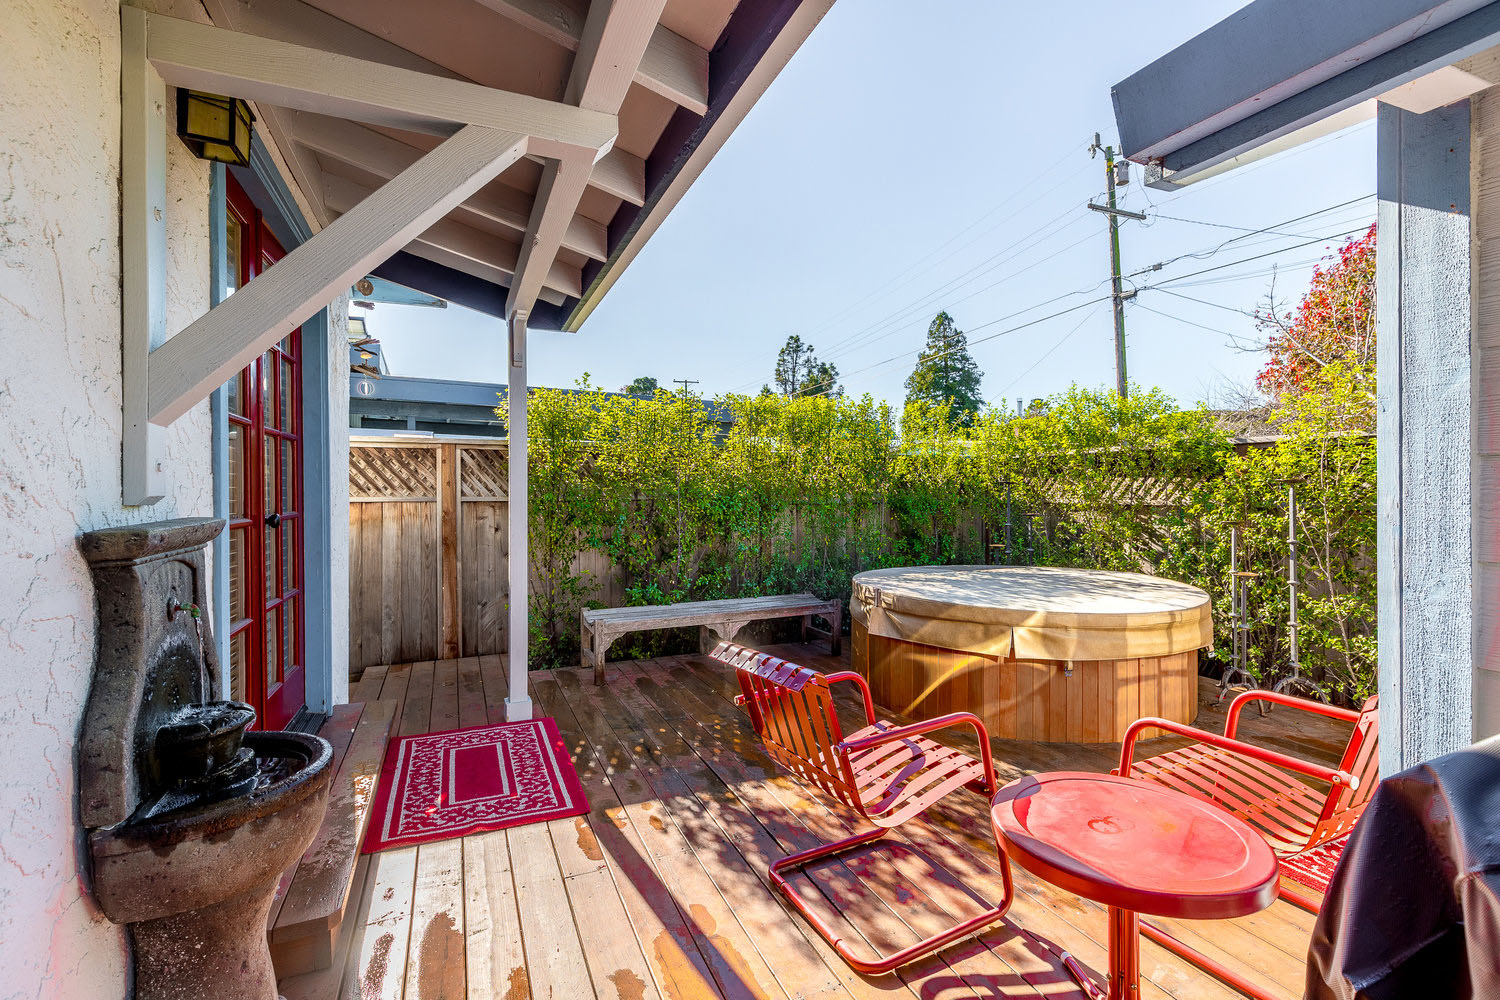 Backyard Deck with Hottub